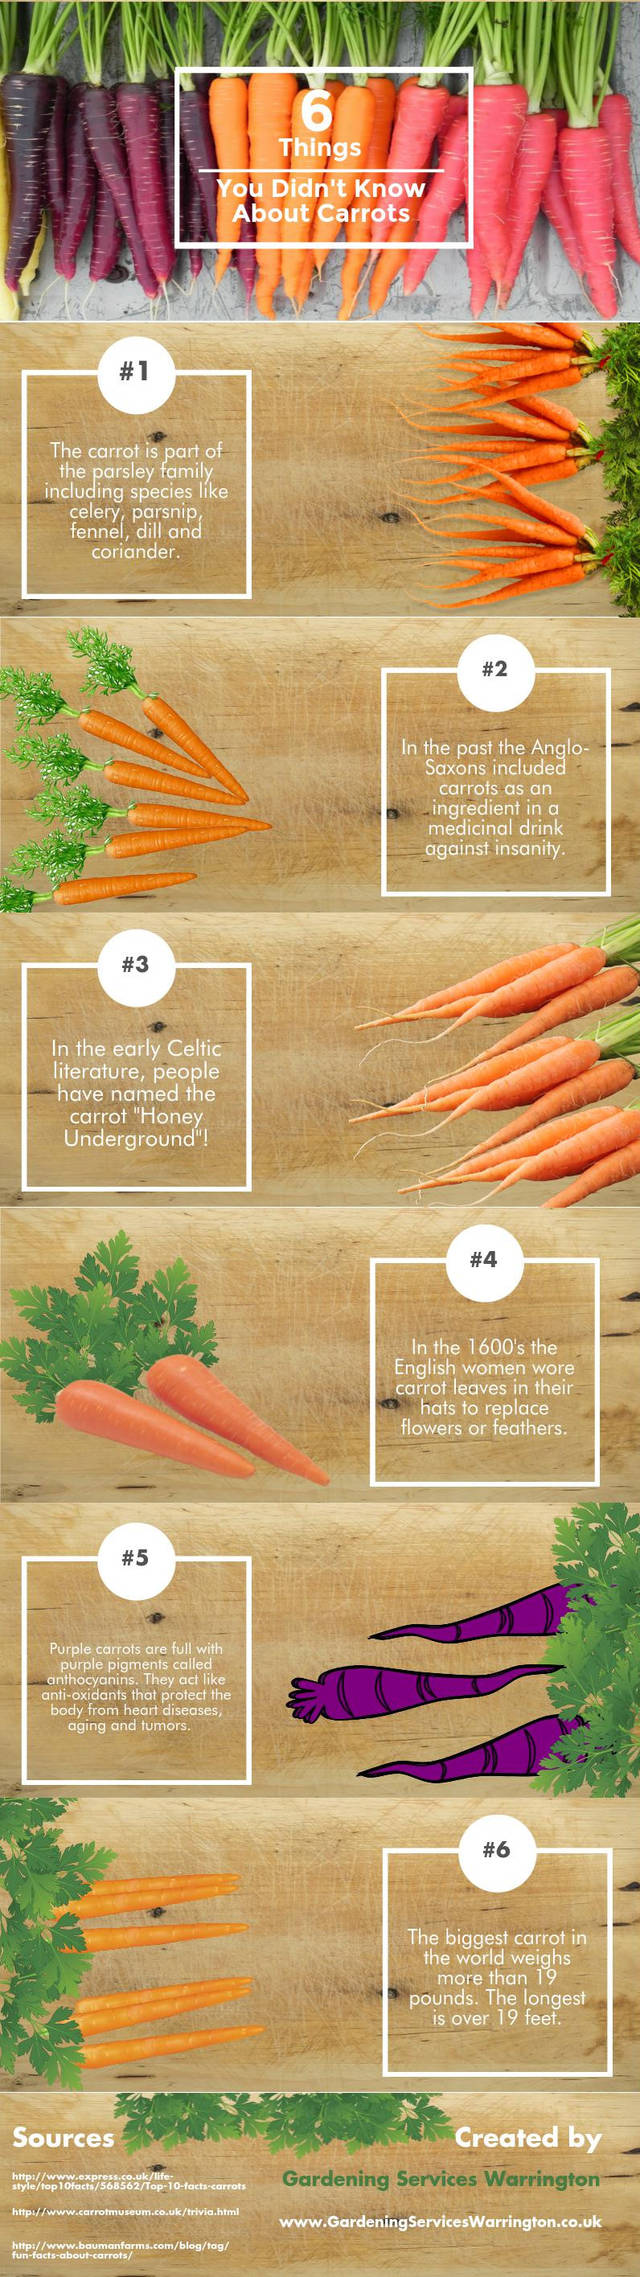 6 things you didn t know about carrots